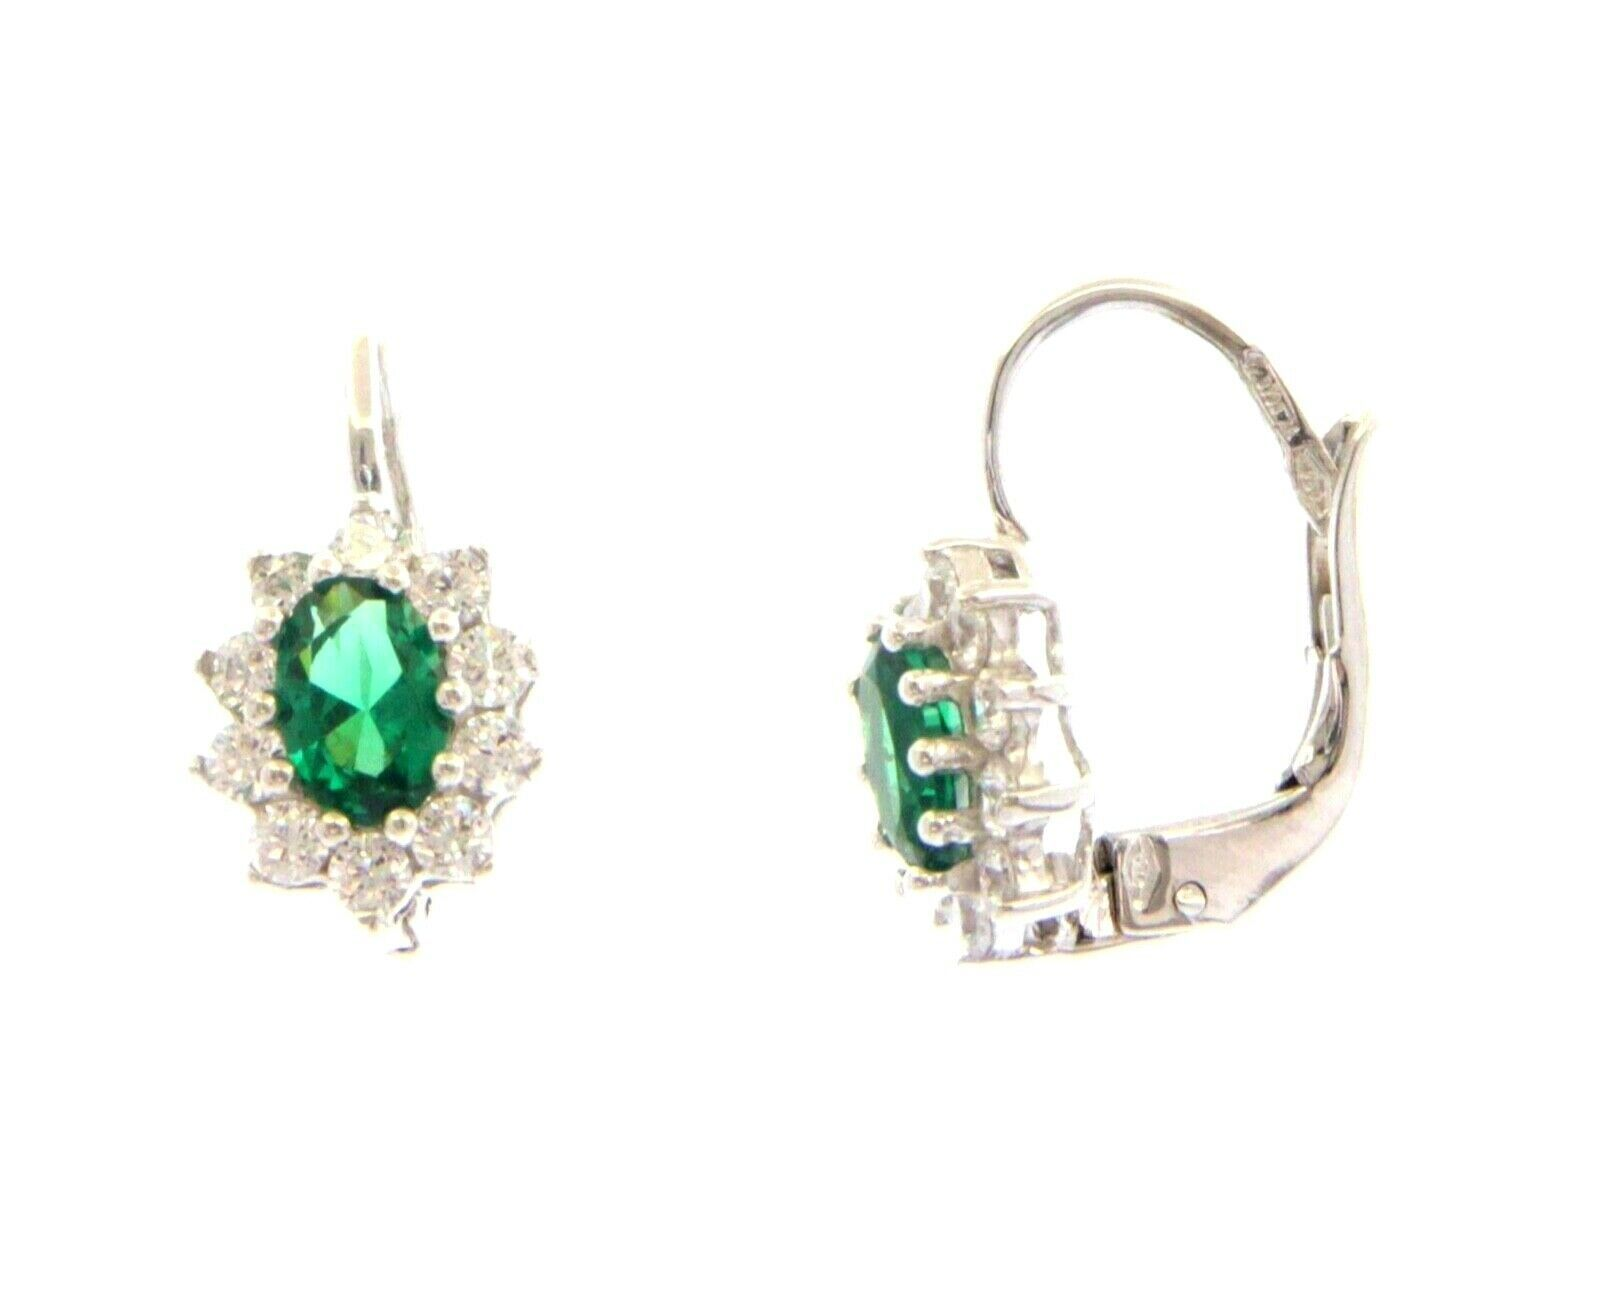 18K WHITE GOLD FLOWER LEVERBACK EARRINGS OVAL GREEN CRYSTAL CUBIC ZIRCONIA FRAME